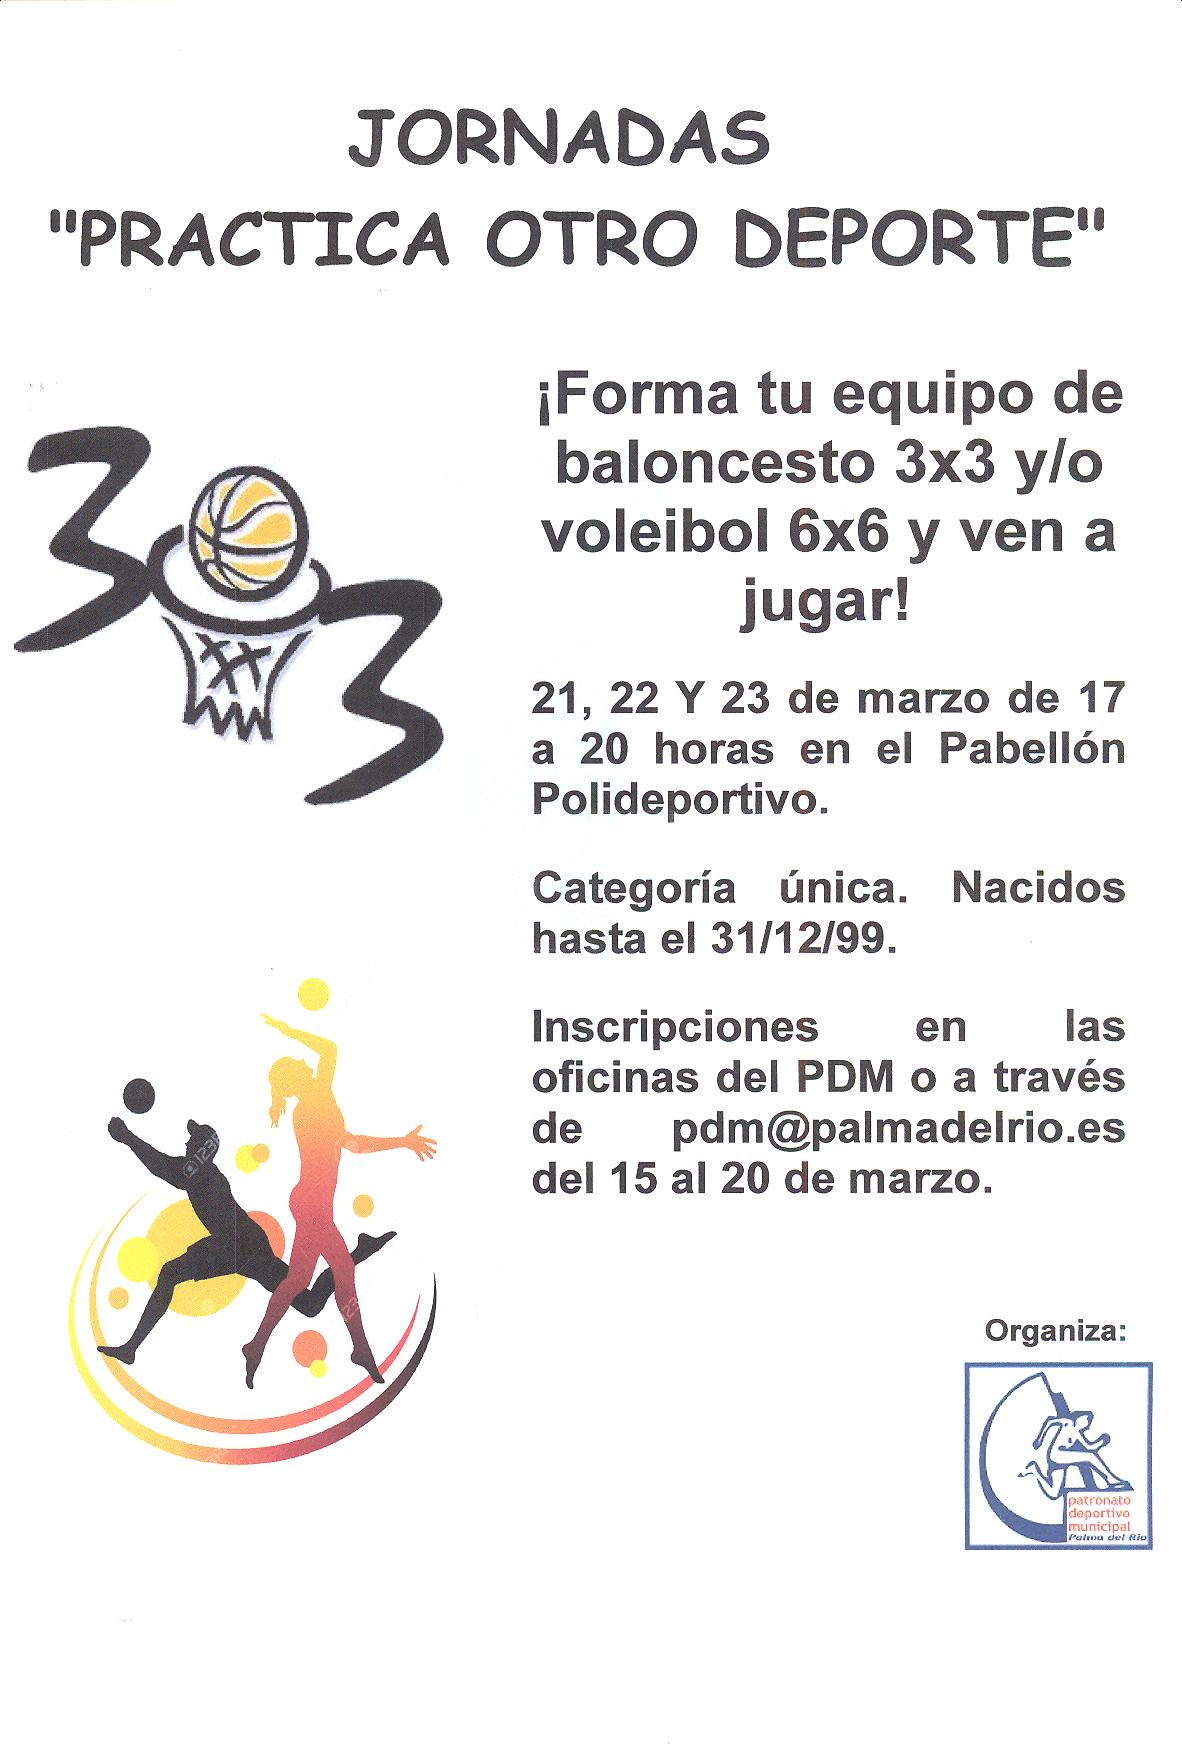 https://www.palmadelrio.es/sites/default/files/jornadaspracticaotrodeporte.jpg